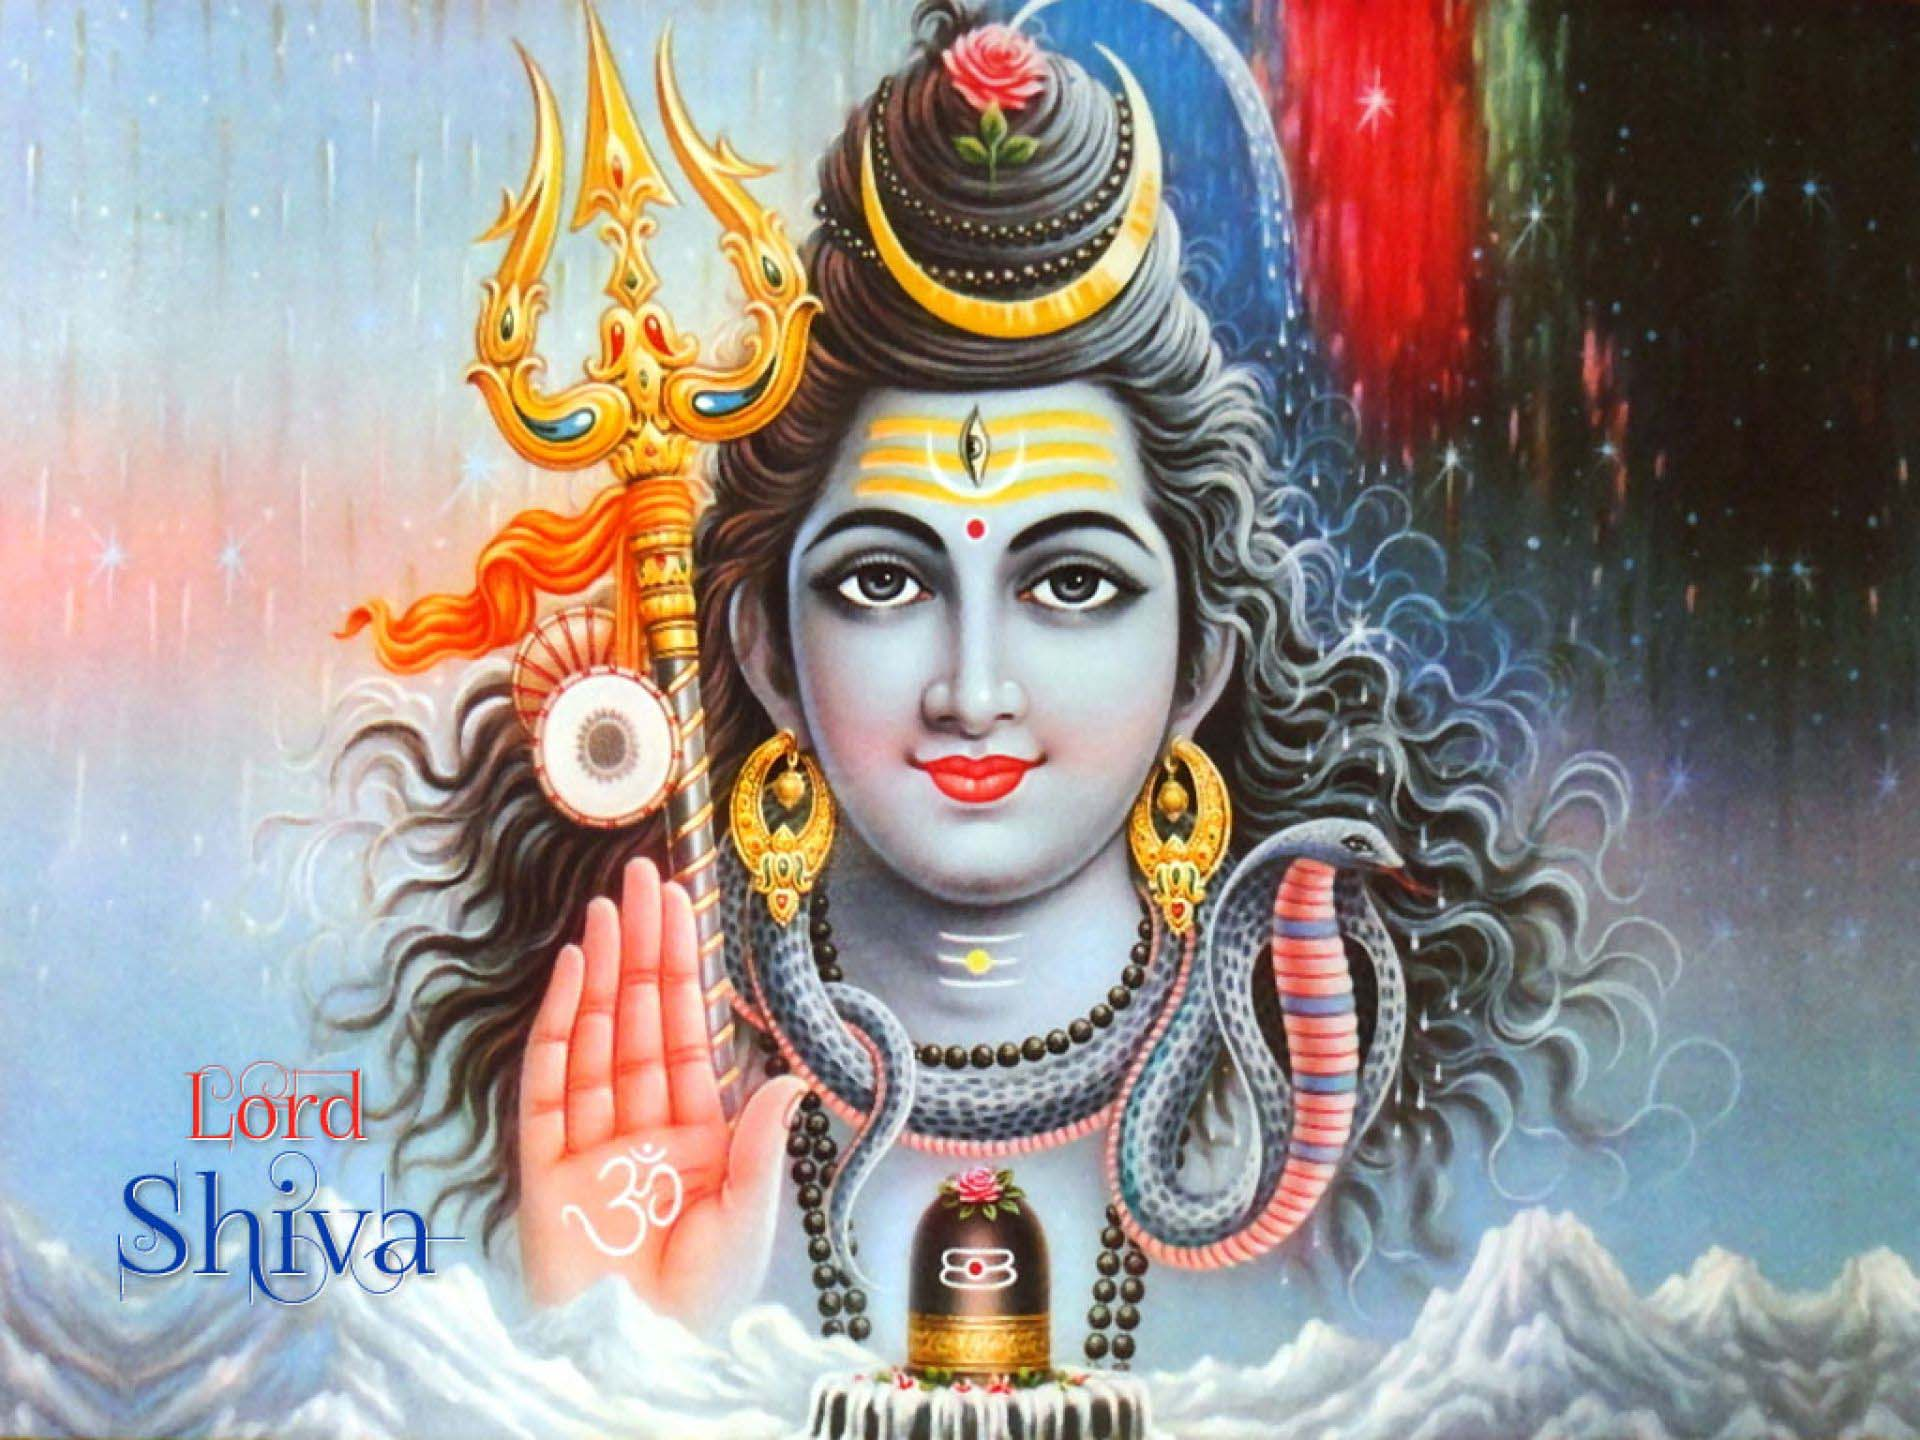 Lord Shiva Wallpapers HD Wallpapers for Desktop   2014 1920x1440